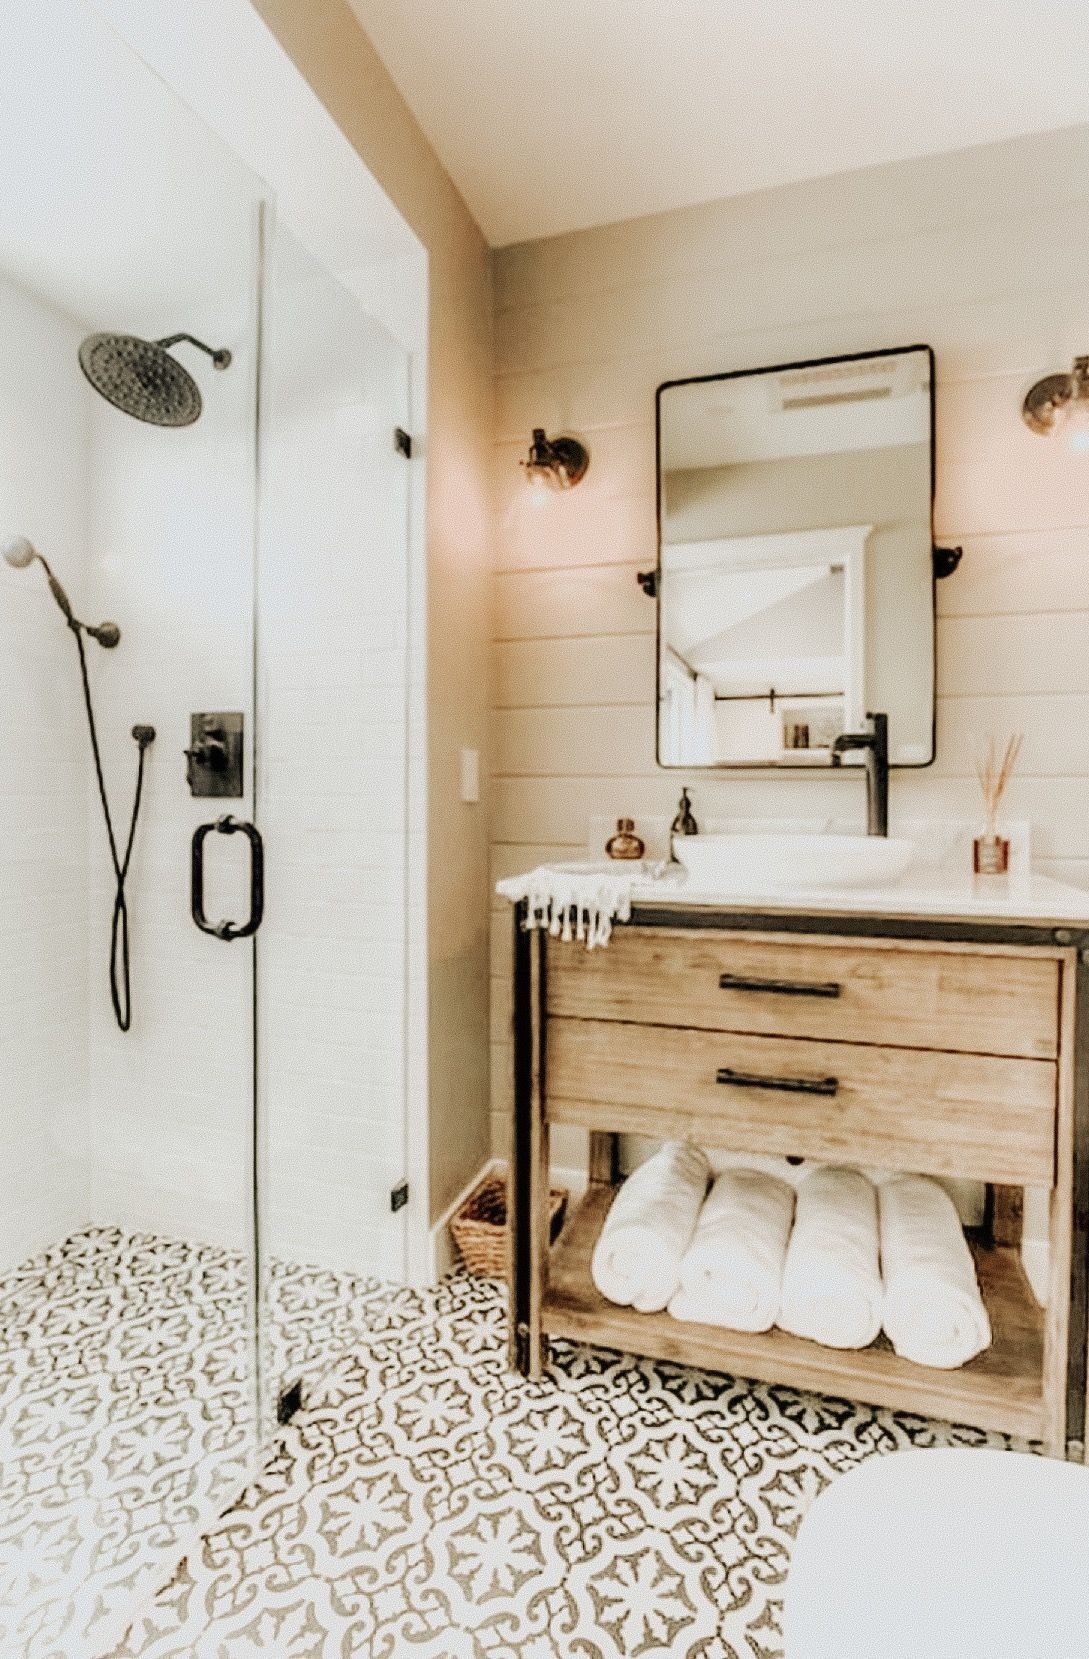 Pinterest Alanamorg Small Bathroom Ideas On A Budget Industrial